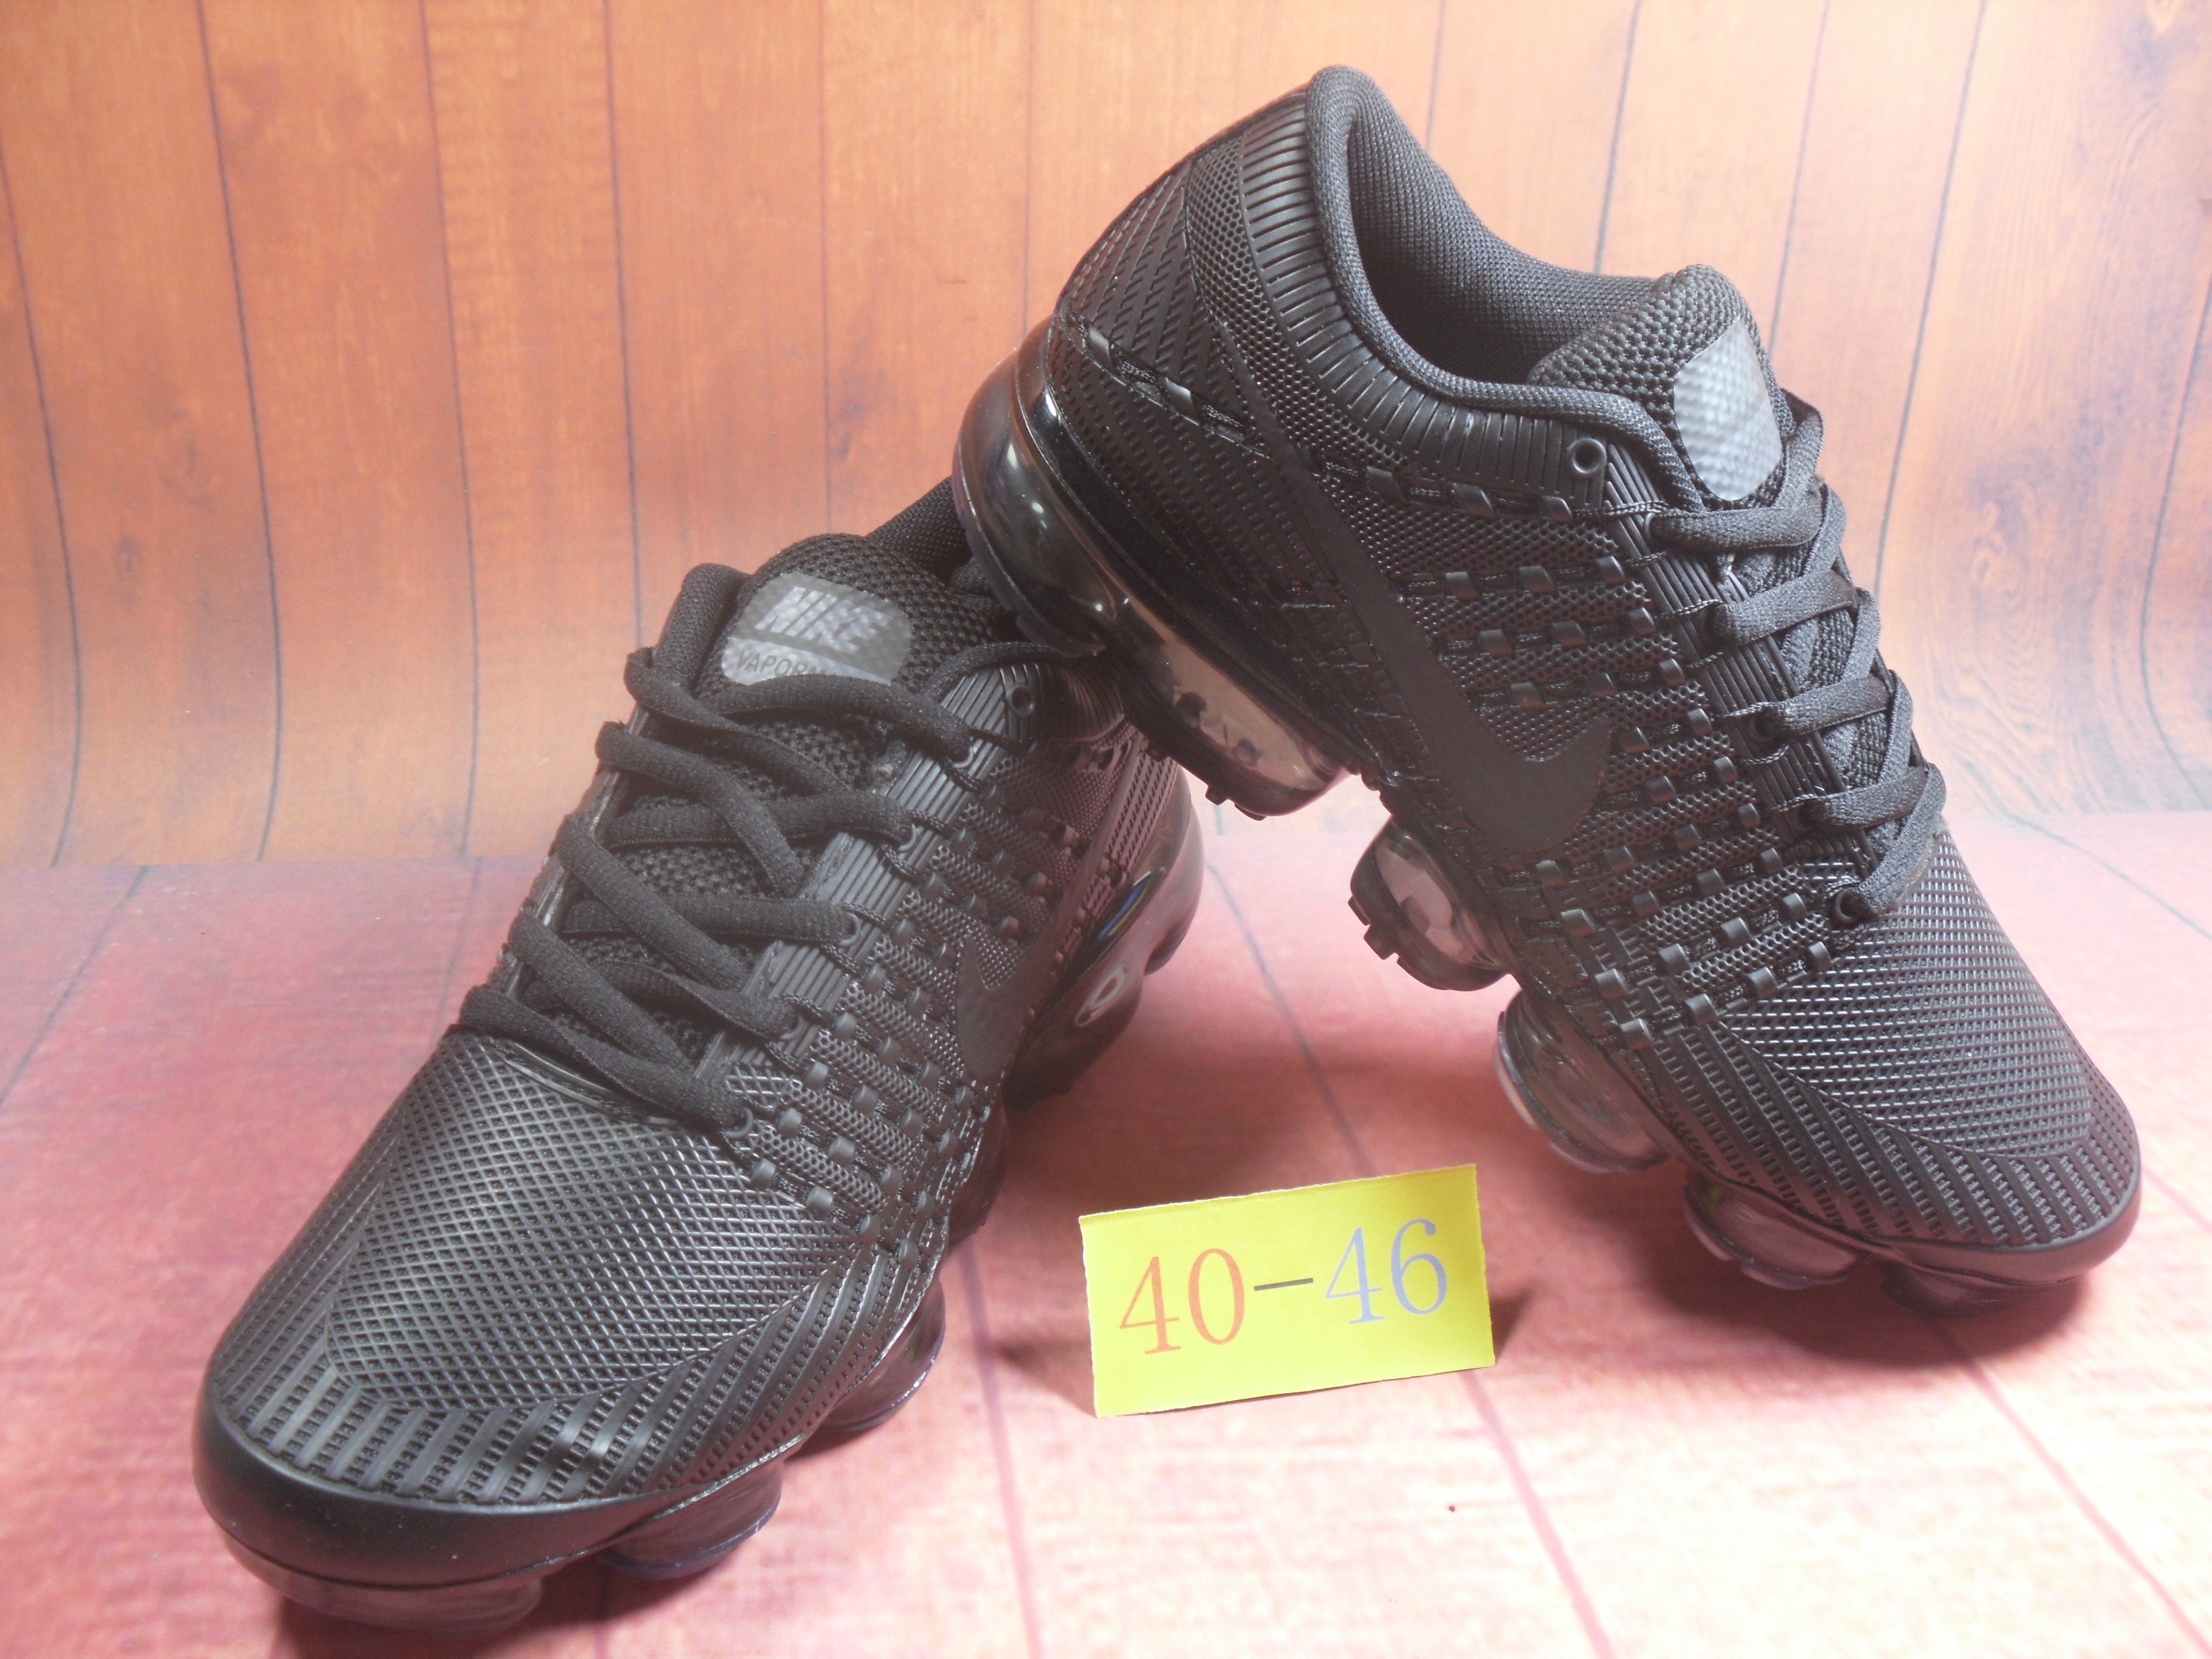 ace2445a832ddf Men 2018 Nike Air VaporMax Flyknit KPU All Black  17RUNNING101503  -  74.00    Real Nike Running Shoes